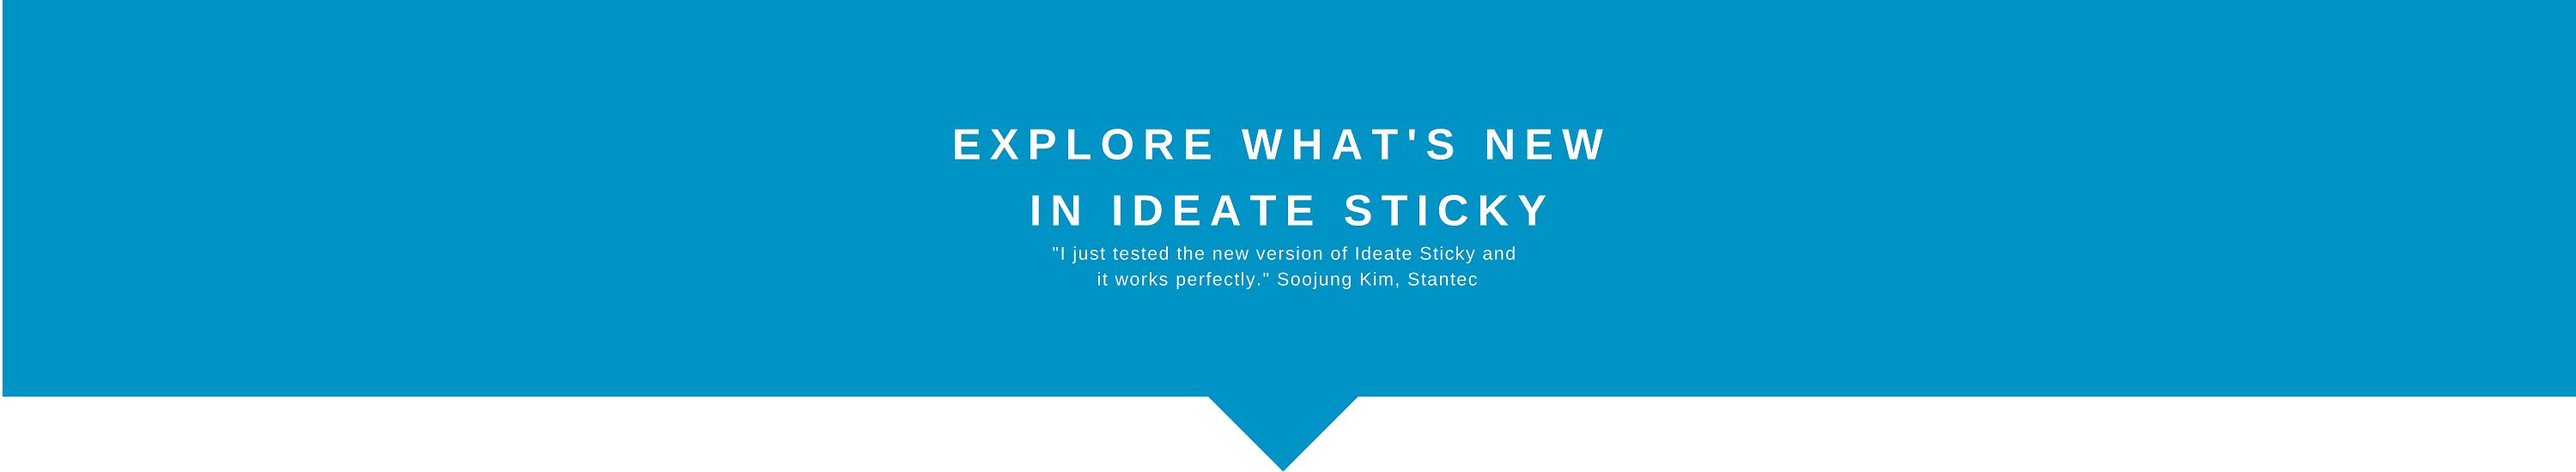 Explore the new version of Ideate Sticky for Revit